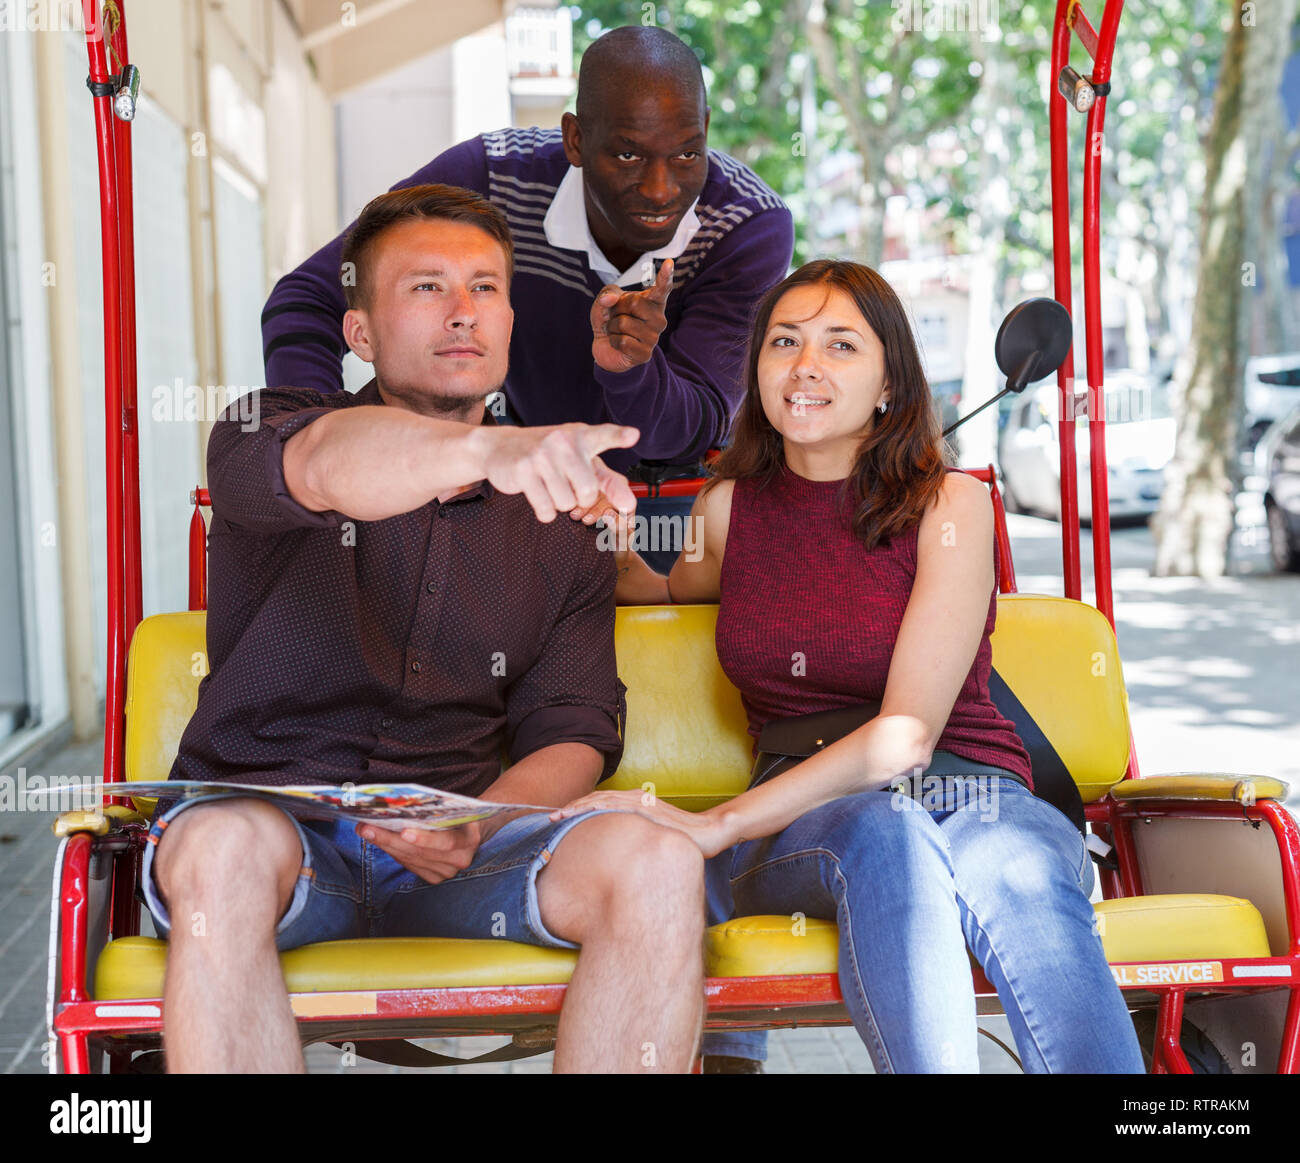 Young loving couple enjoying tour of city on trishaw with affable African American driver - Stock Image